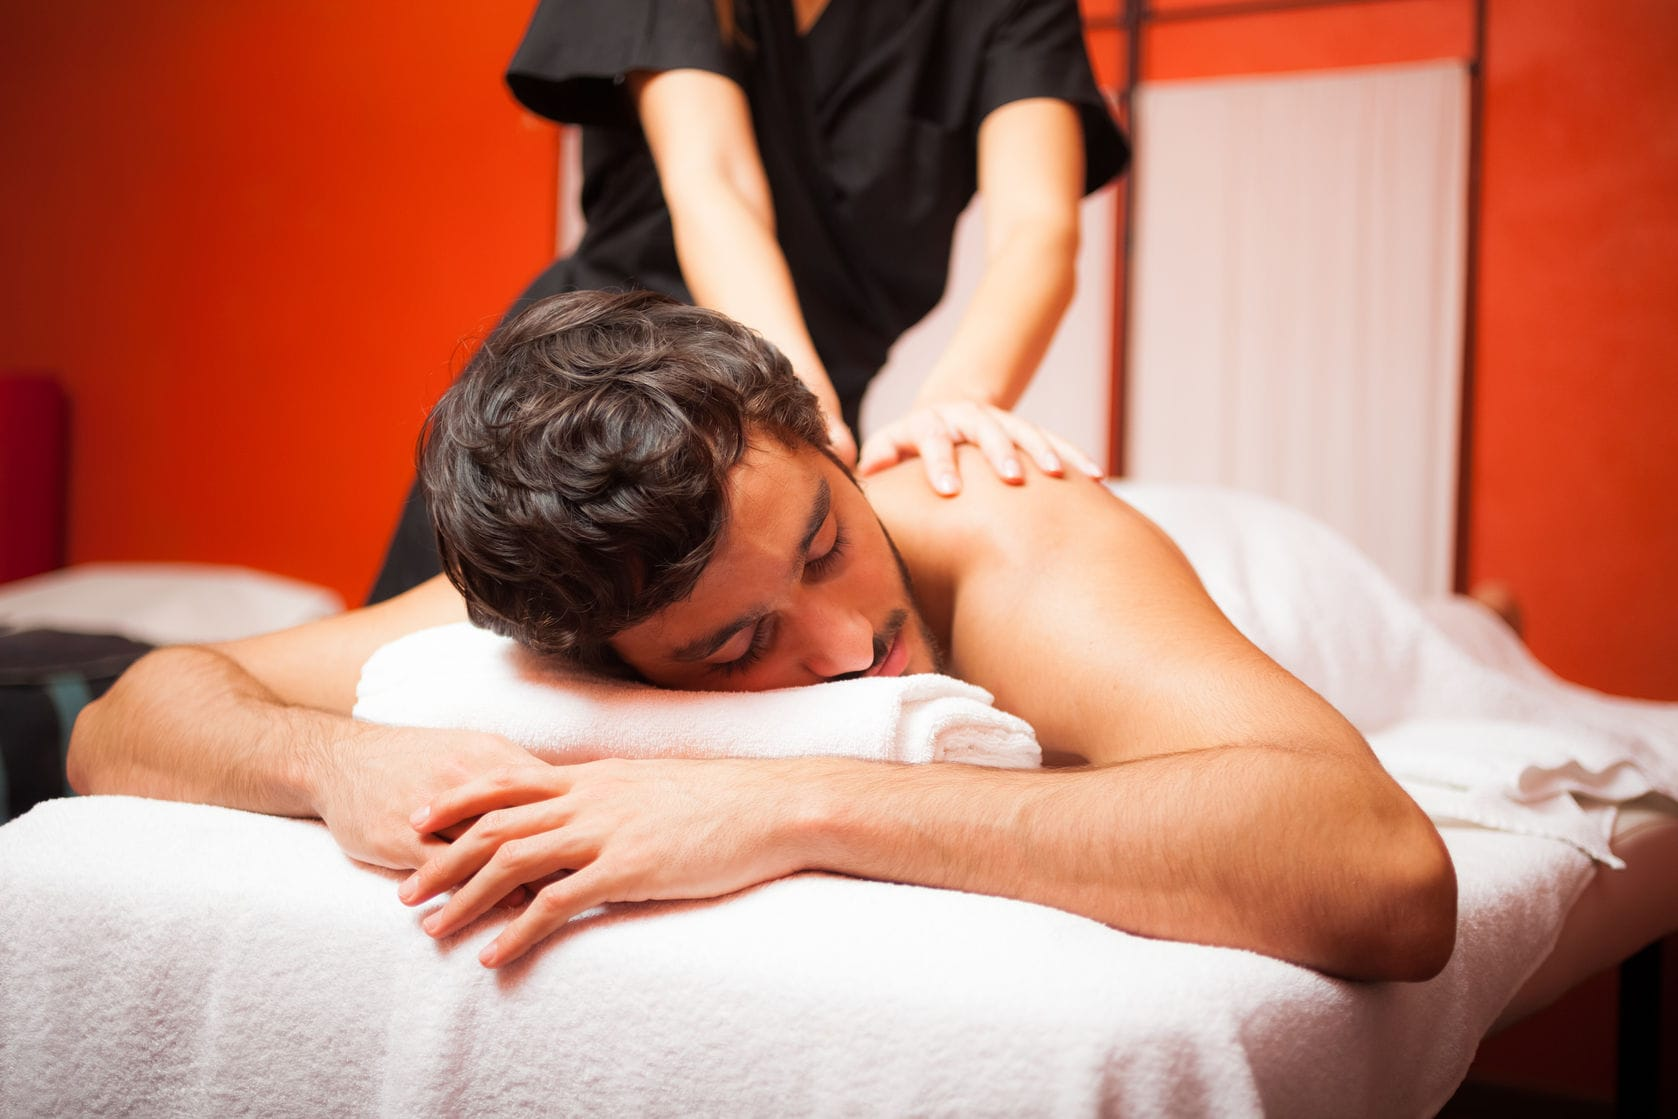 Orthopedic Medical Massage Therapy - Manual, Medical, Sports Massage Therapy | https://physiologicnyc.com/sports-medical-massage/